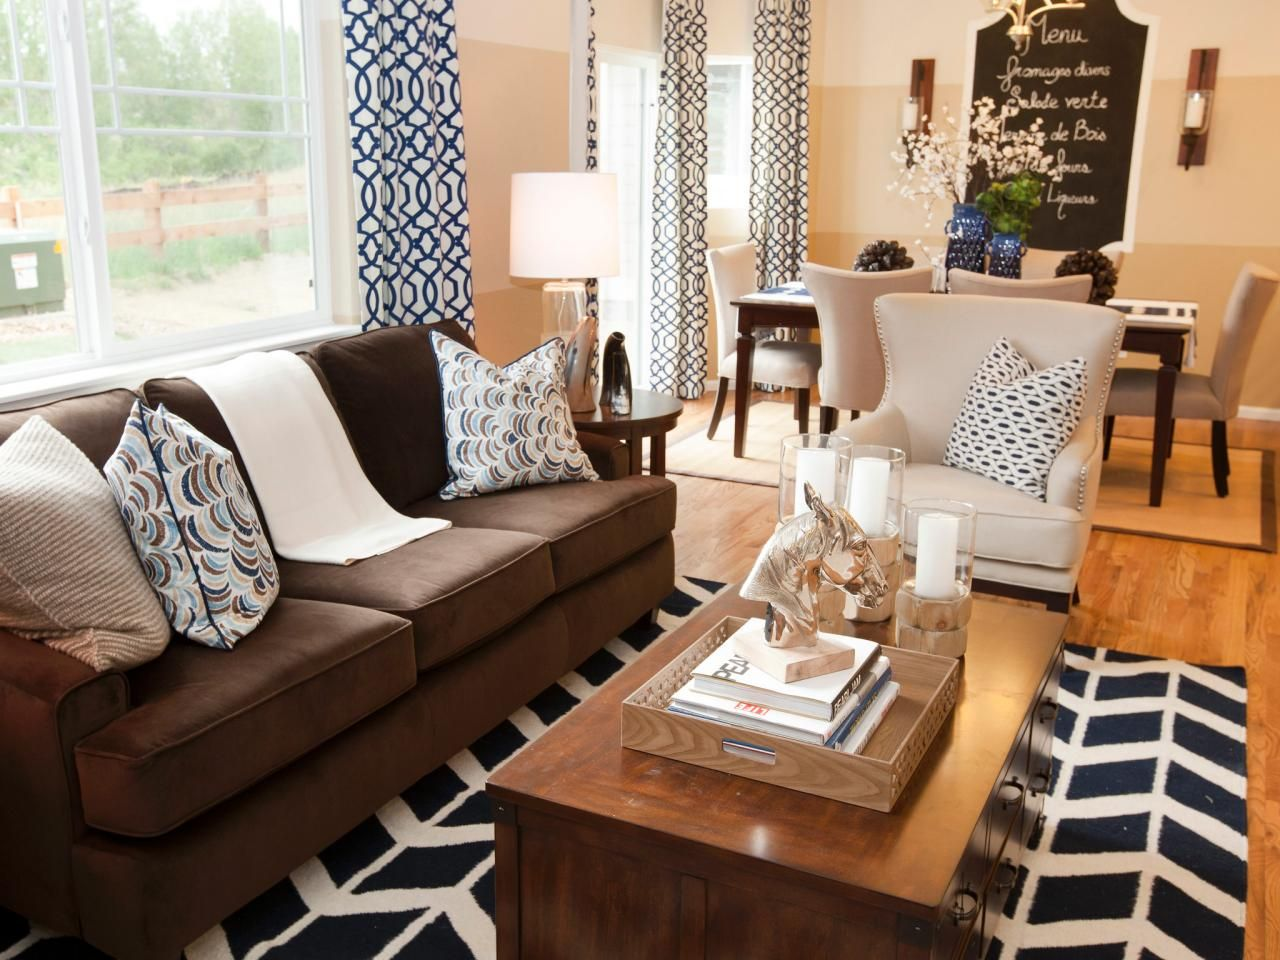 Bold, Graphic, Black-and-white Patterned Curtains, Pillows